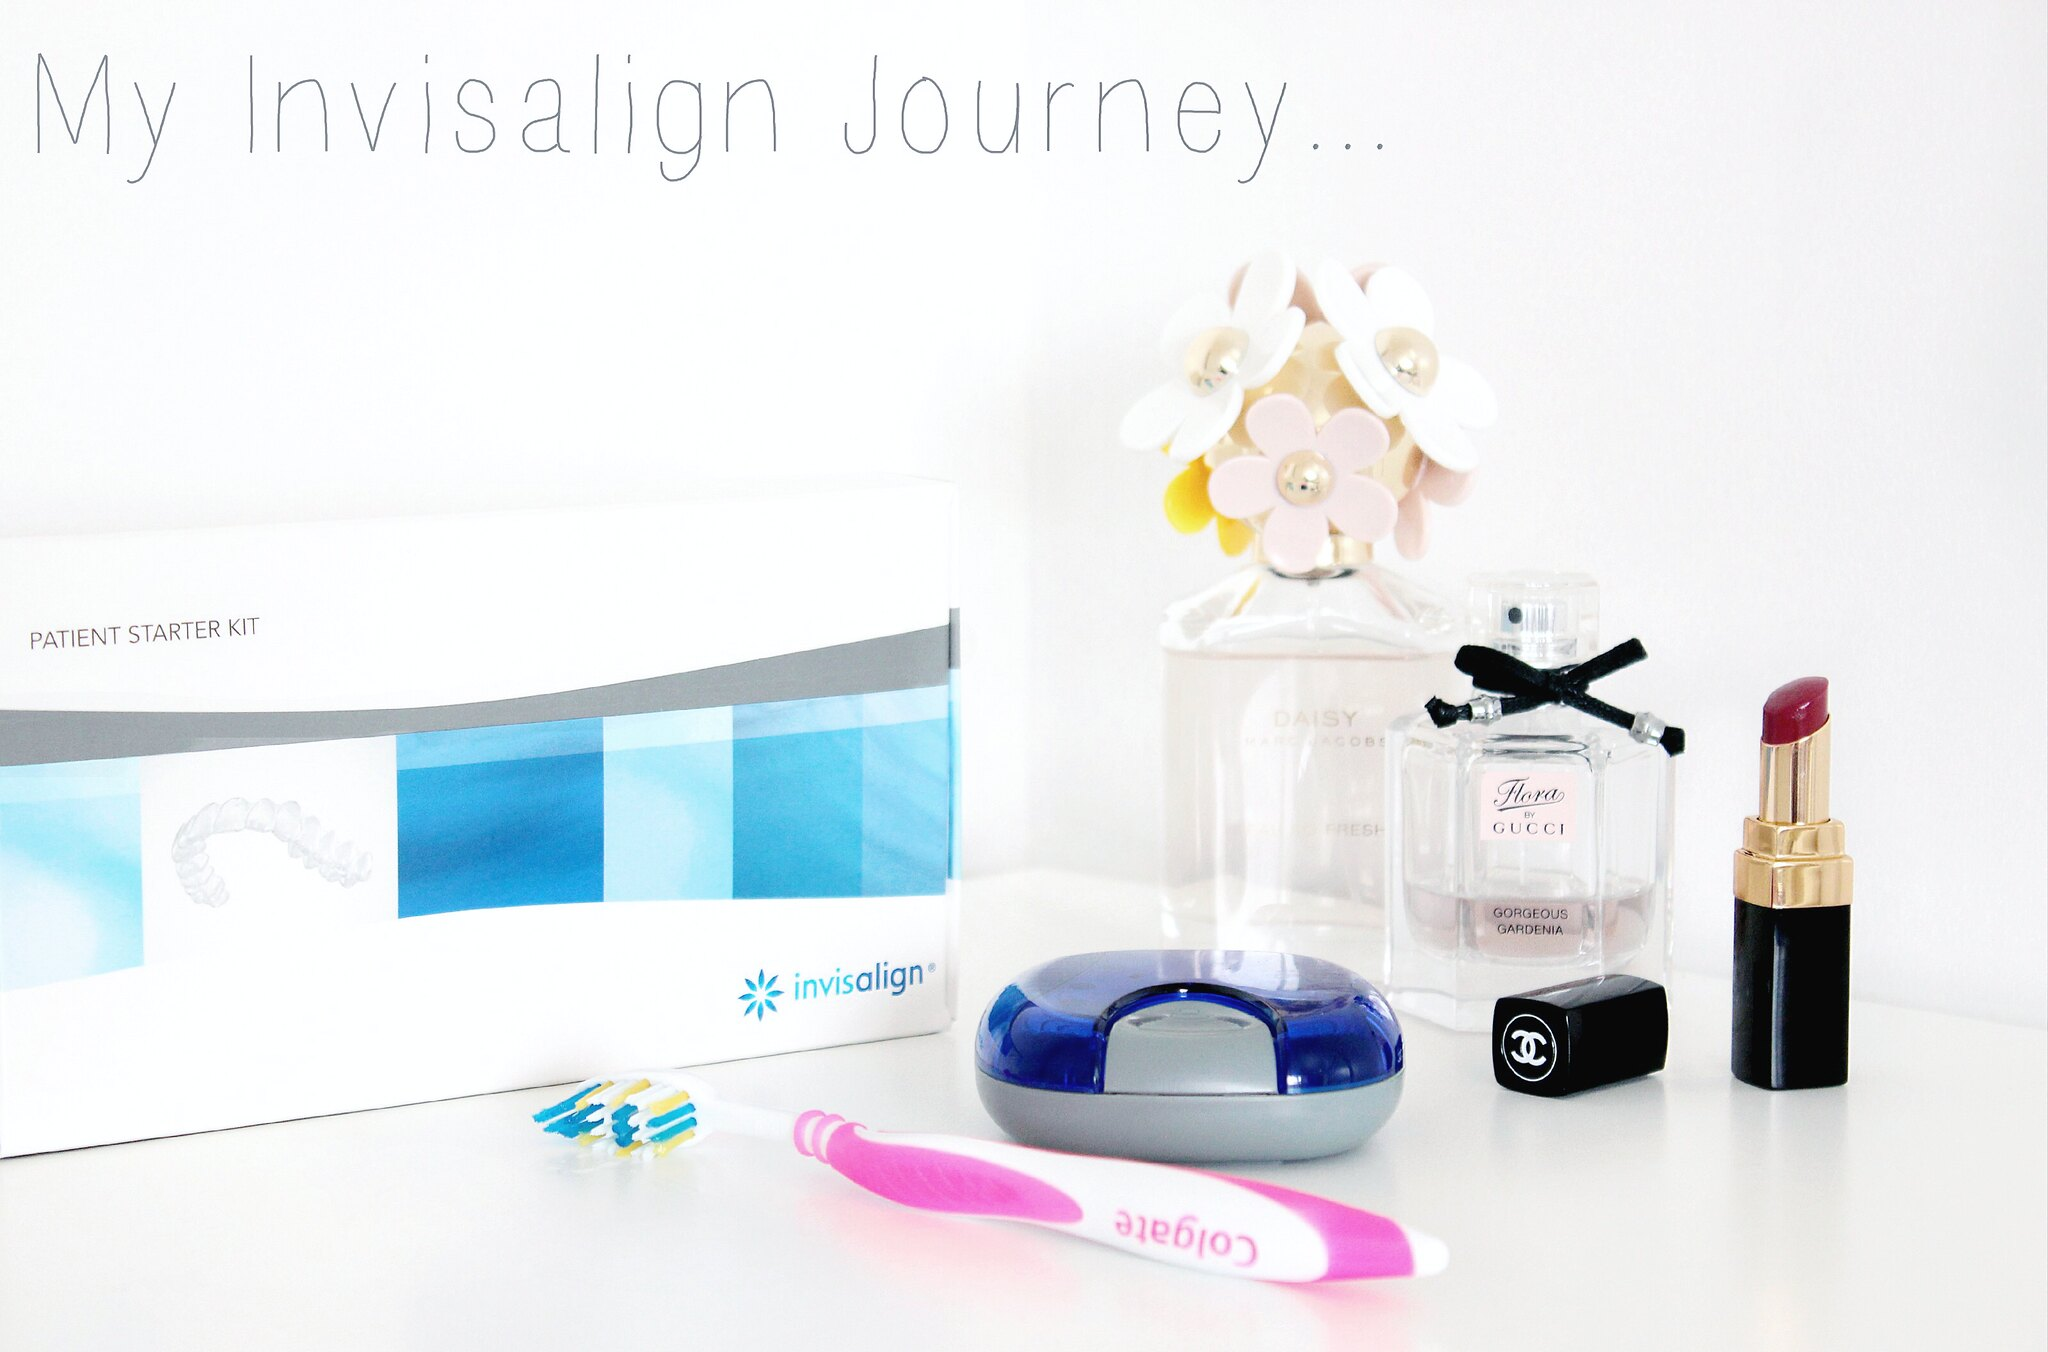 My Invisalign Journey